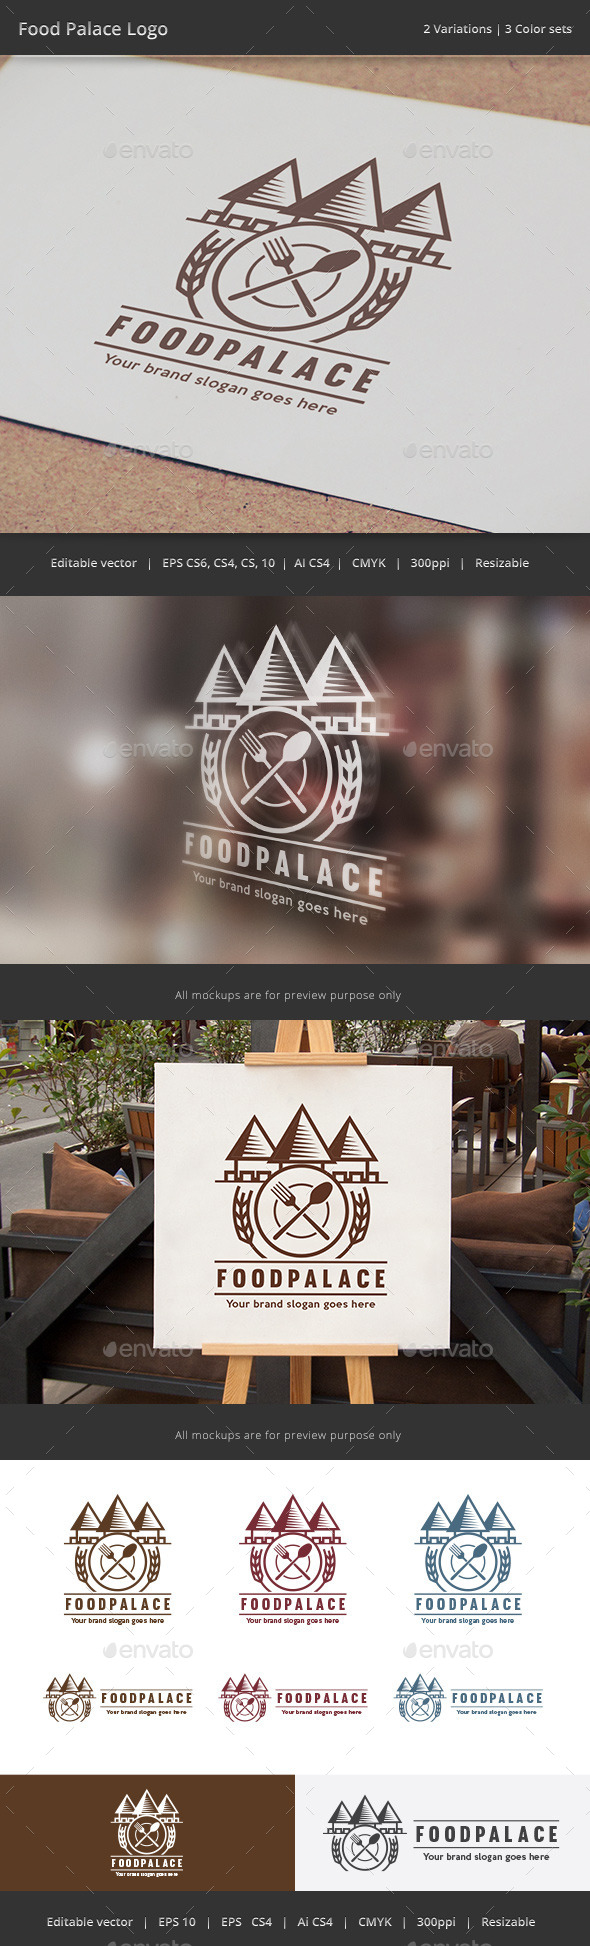 Food Palace Logo - Crests Logo Templates